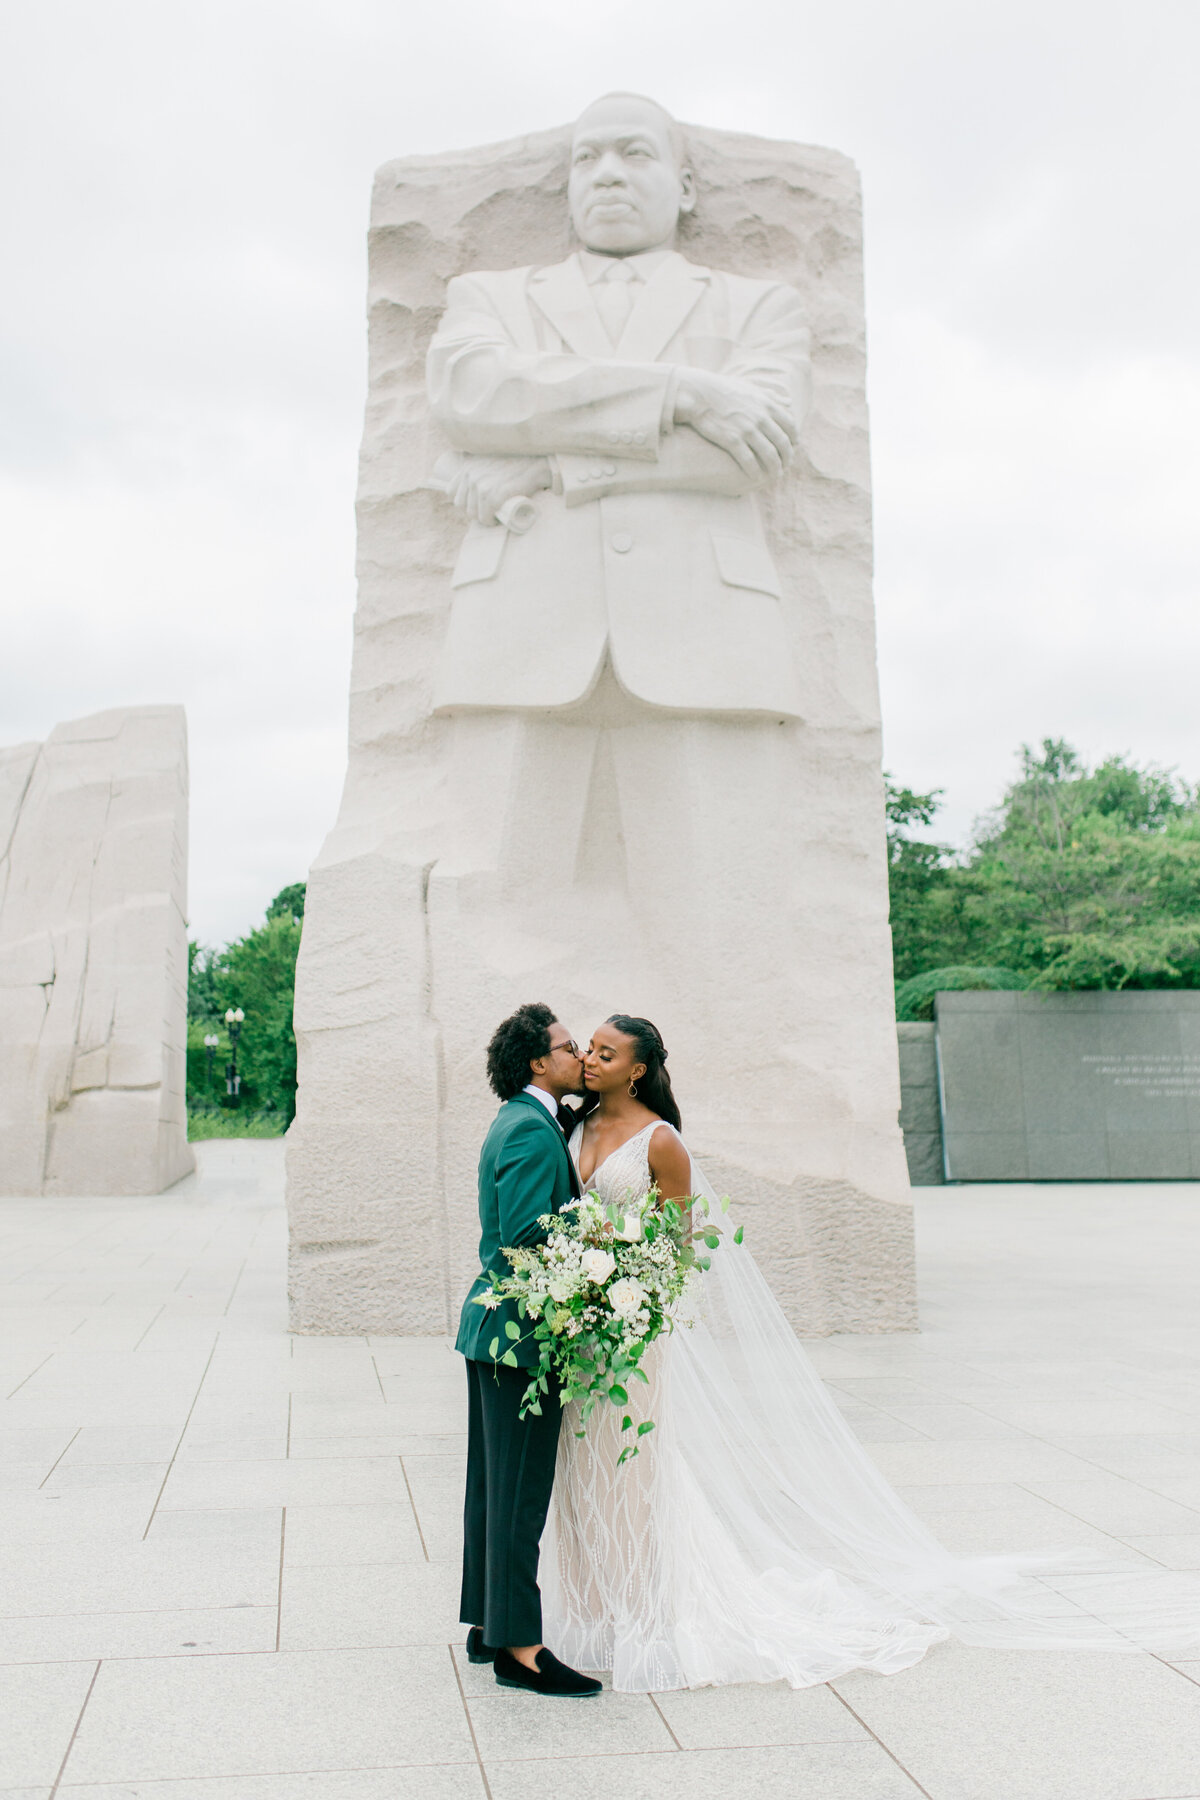 Solomon_Tkeyah_Micro_COVID_Wedding_Washington_DC_War_Memorial_MLK_Memorial_Linoln_Memorial_Angelika_Johns_Photography-4890